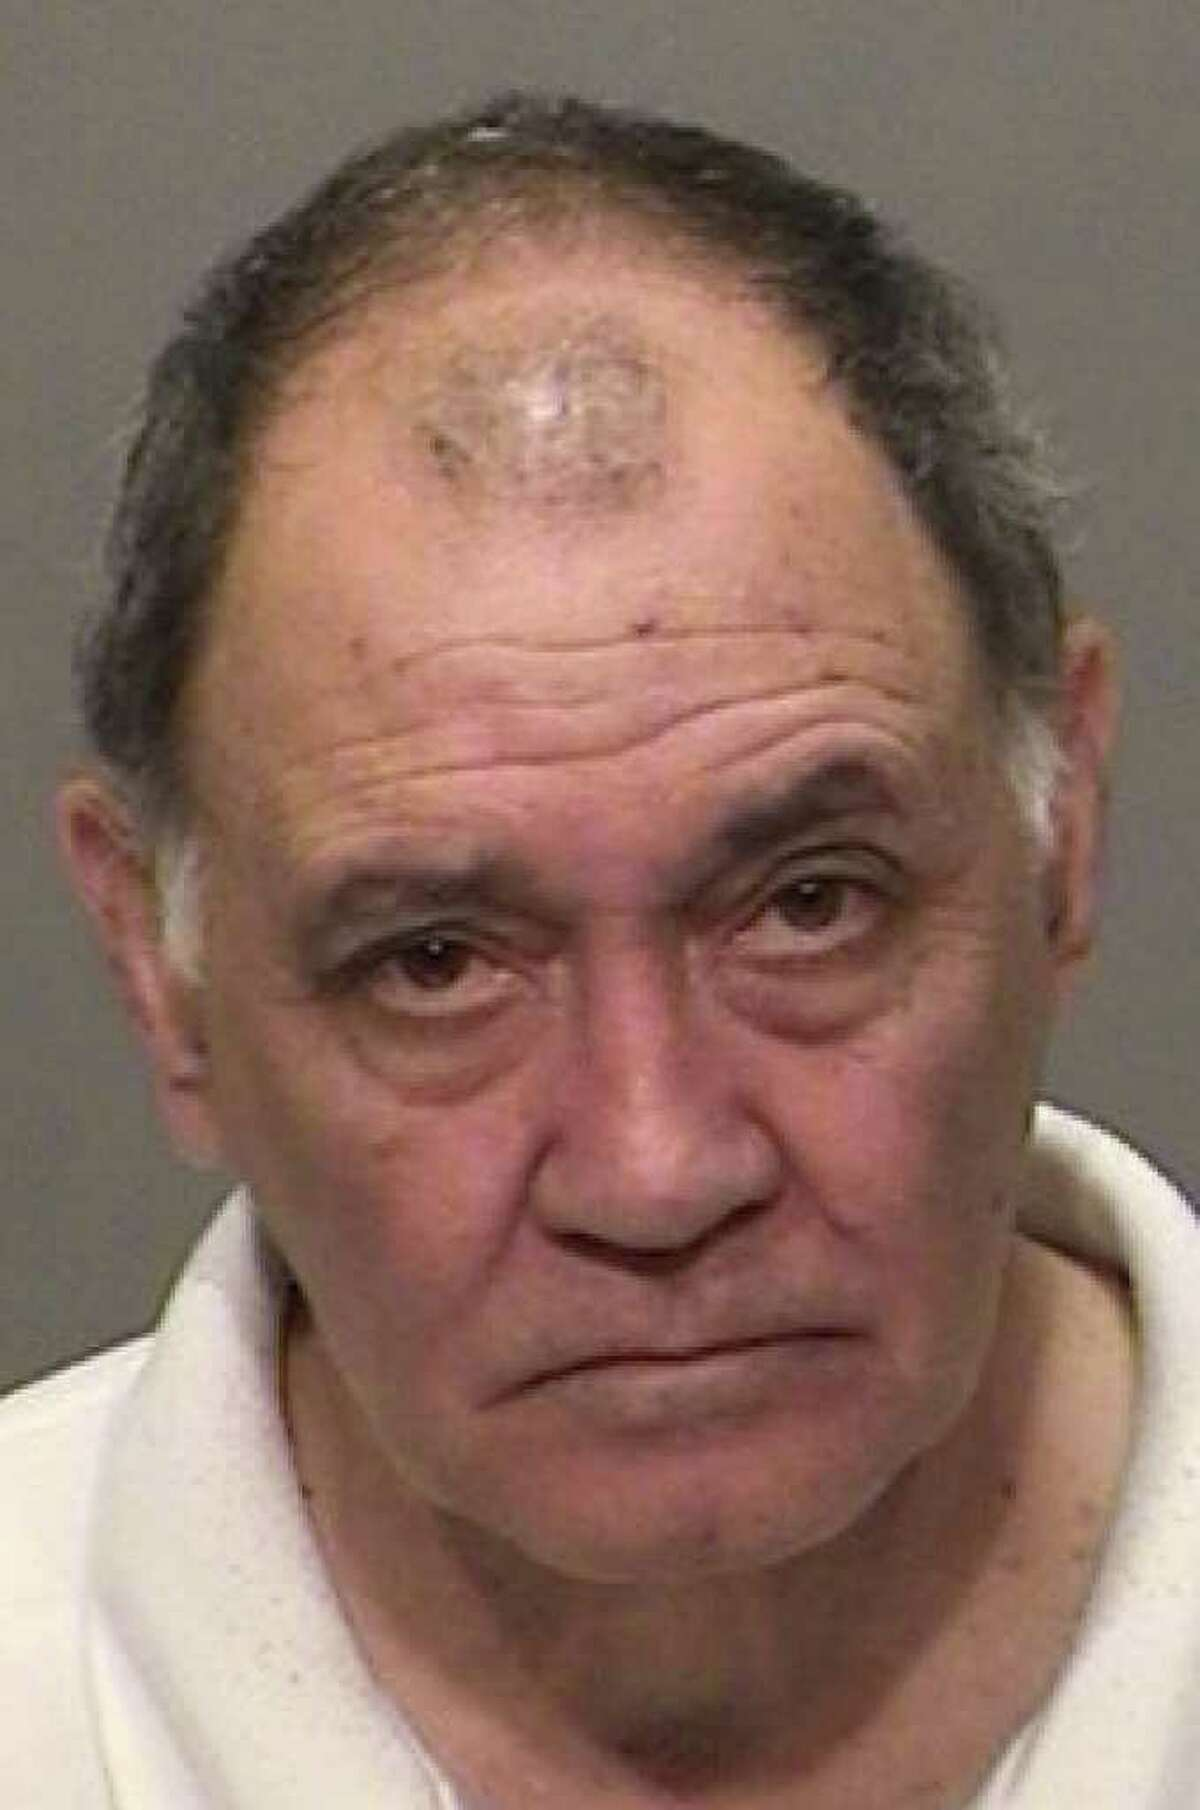 Joseph Antonelli, 64, of Stamford, has been charged by Greenwich police with three counts of disorderly conduct for allegedly making threats against President Barack Obama, who stopped in Stamford and Greenwich on Thursday. Photo provided by Greenwich police.